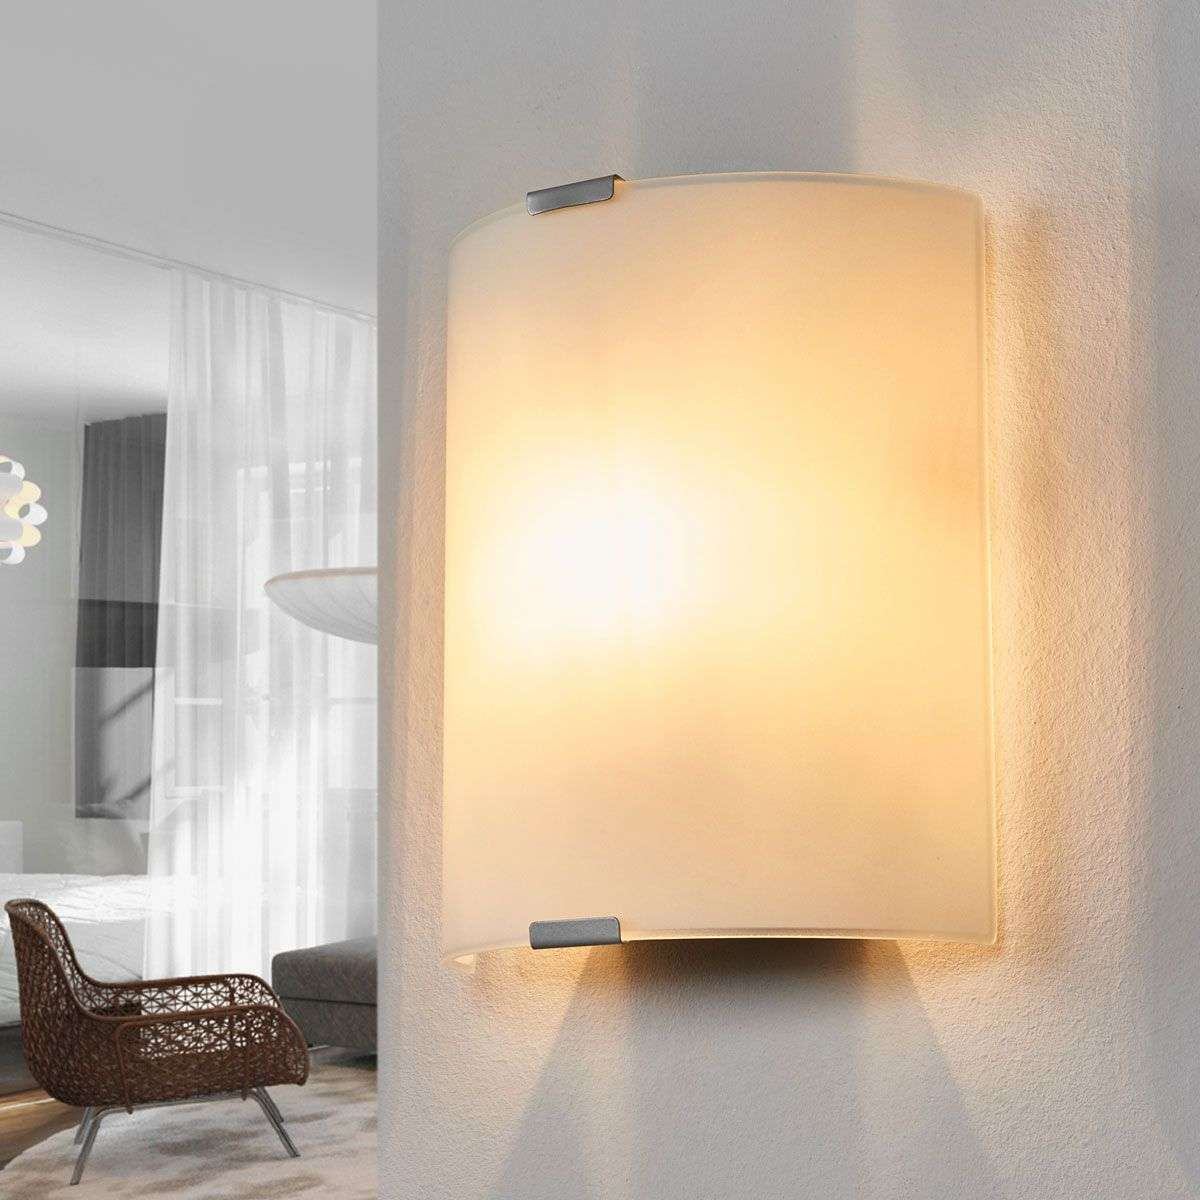 Simple wall light Grey with glass   Lights.ie